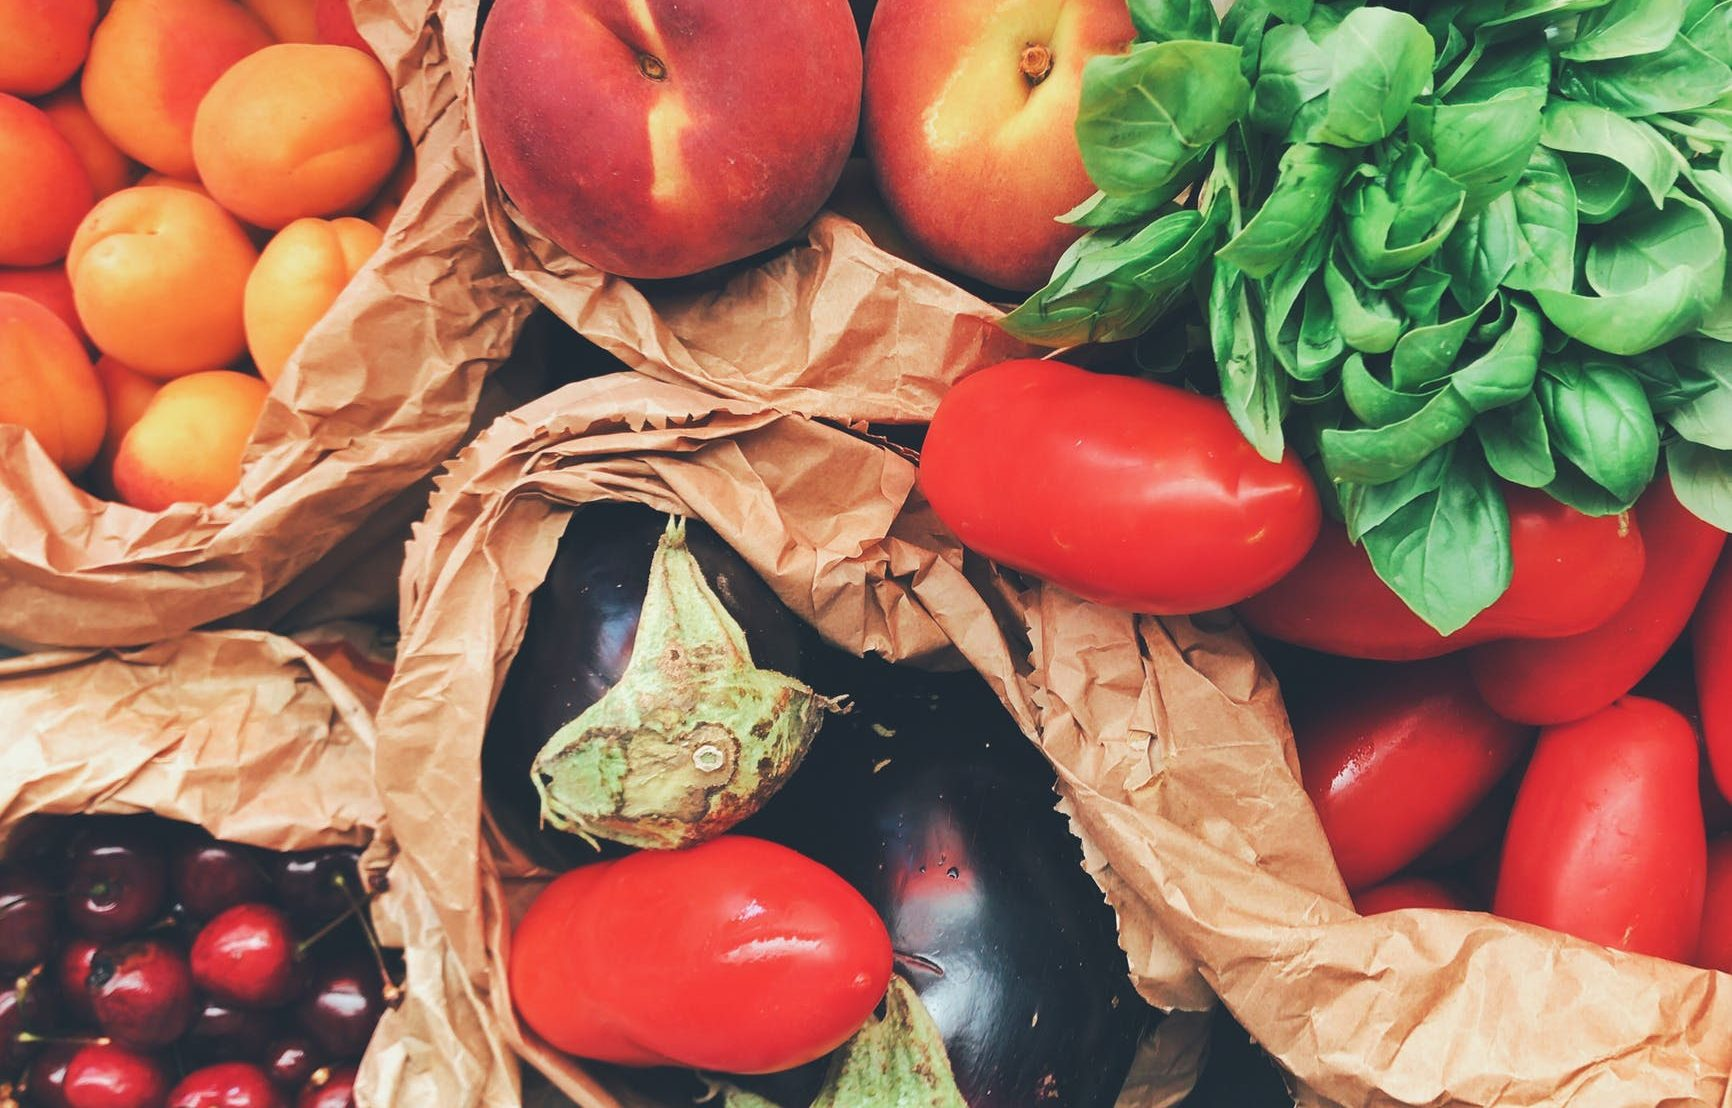 neuropathy and plant based diet